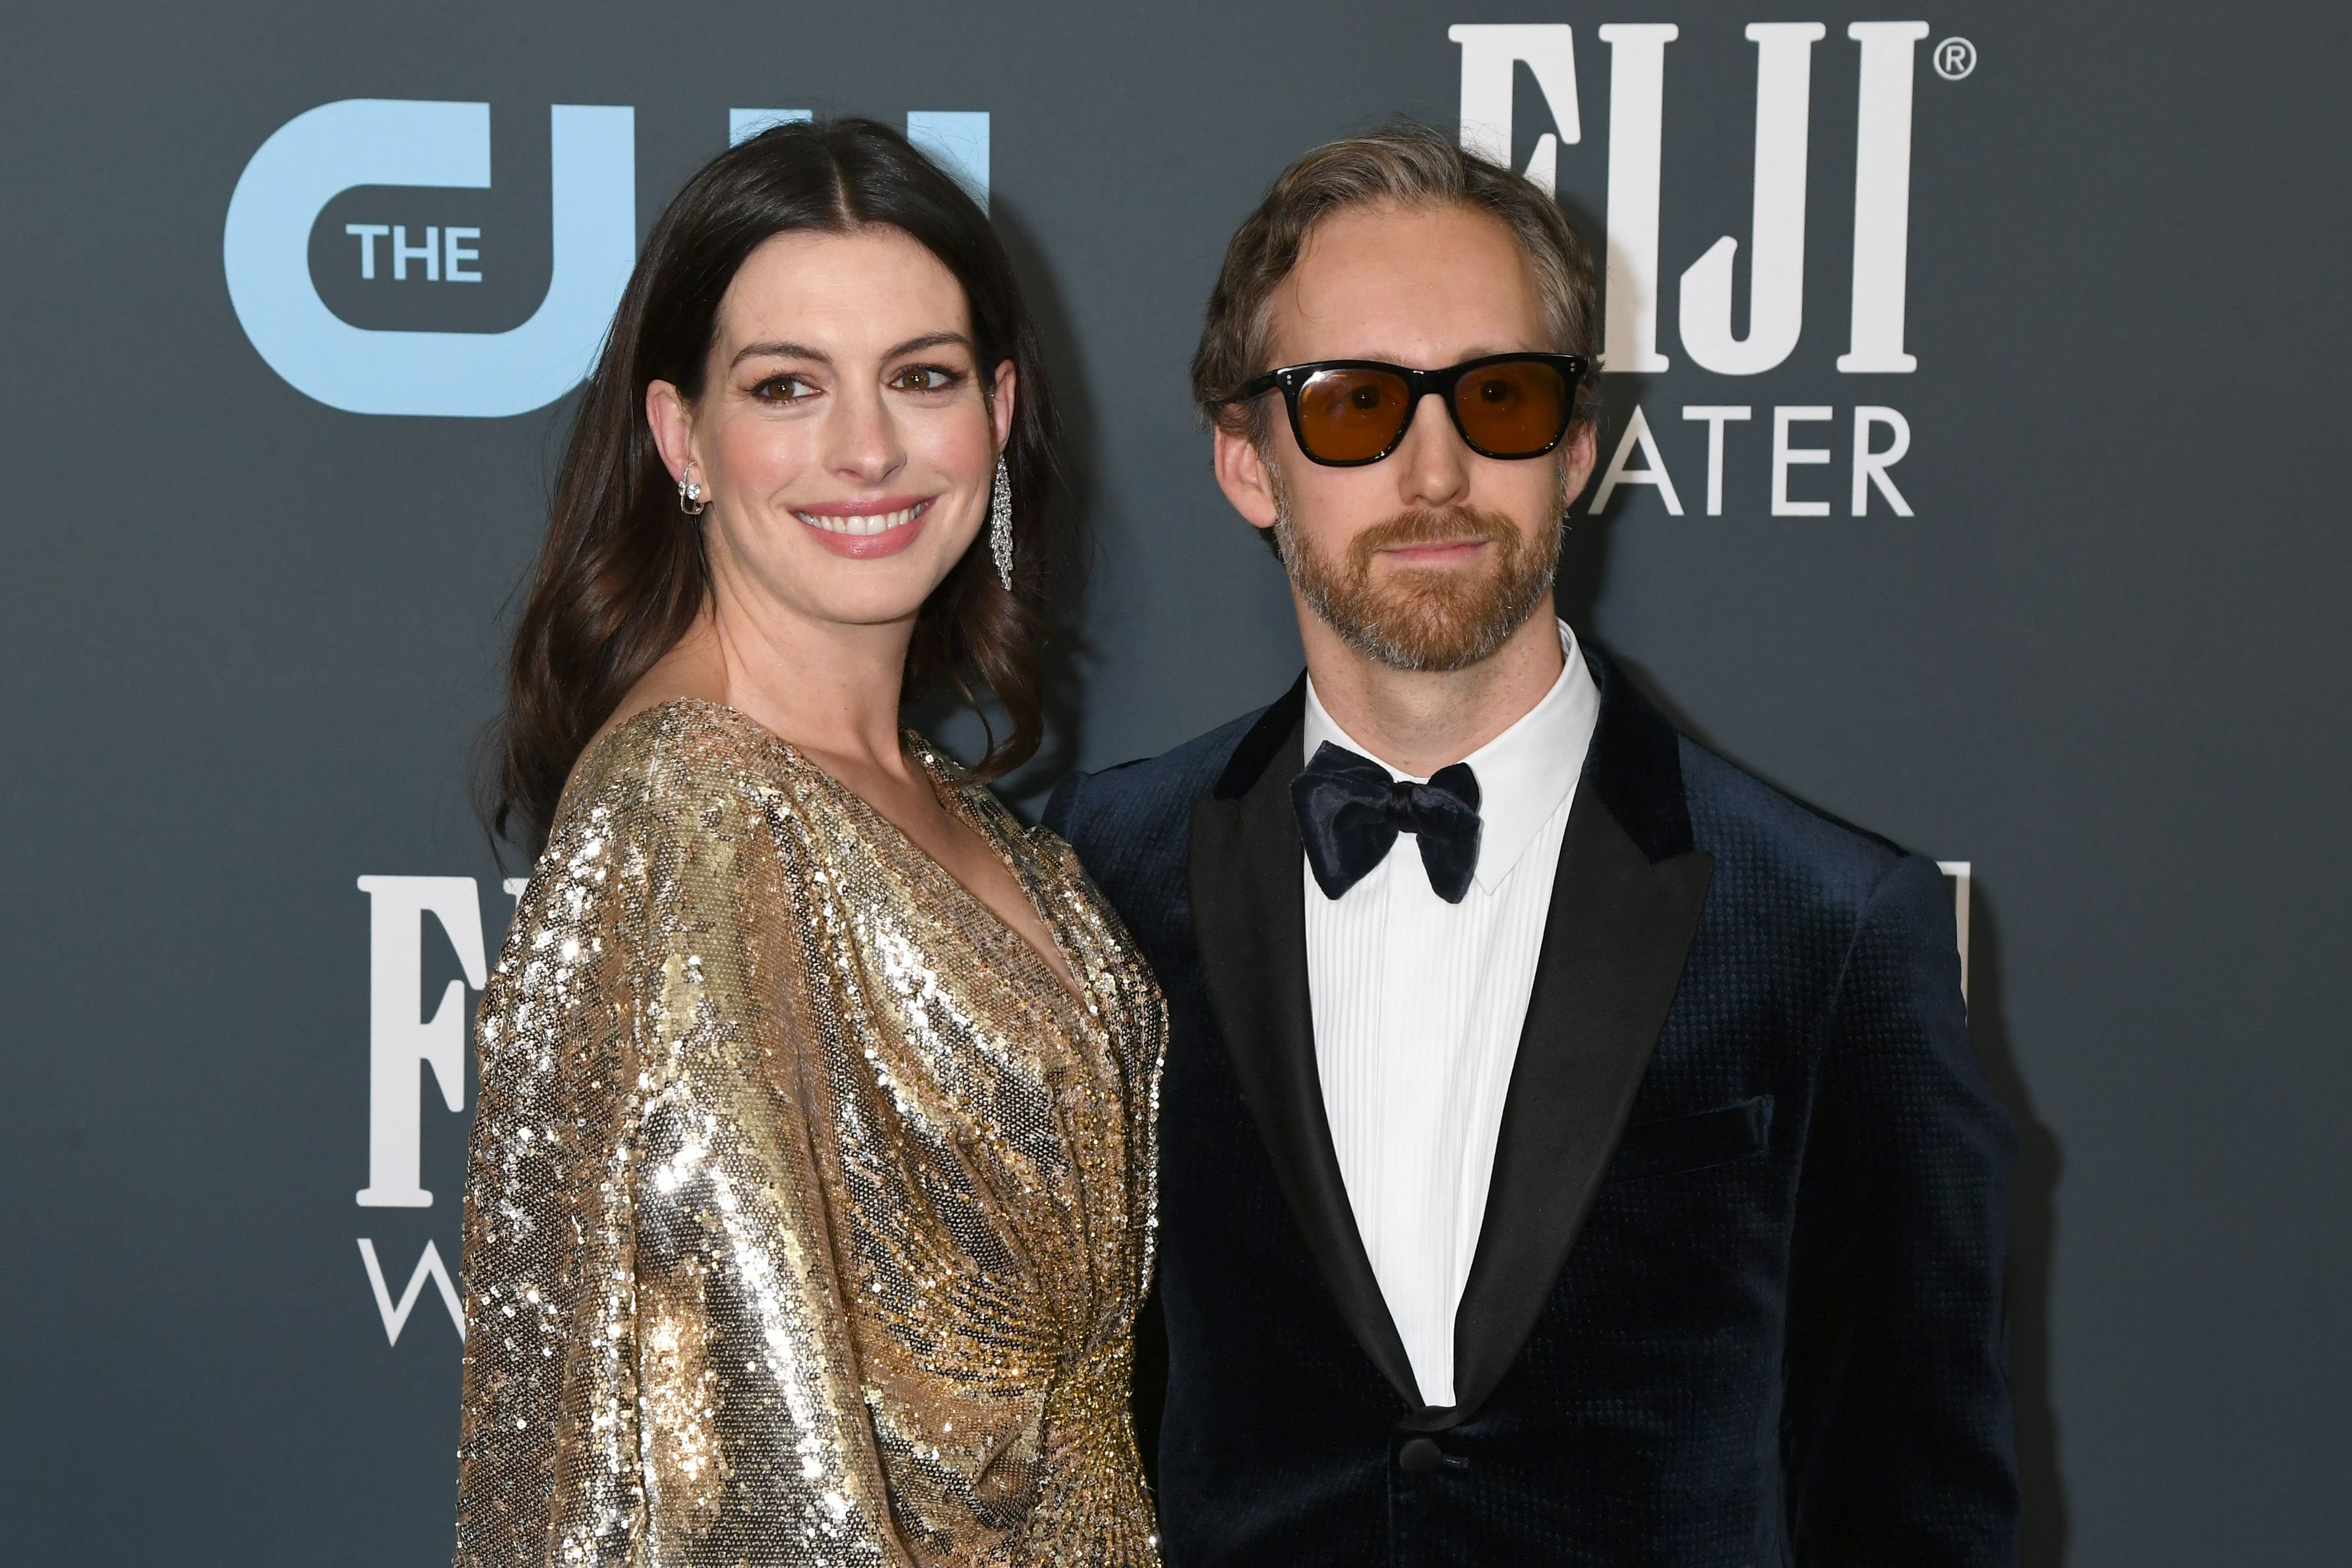 Anne Hathaway and Adam Shulman at the 25th Annual Critics' Choice Awards in January 2020 in Santa Monica   Source: Getty Images